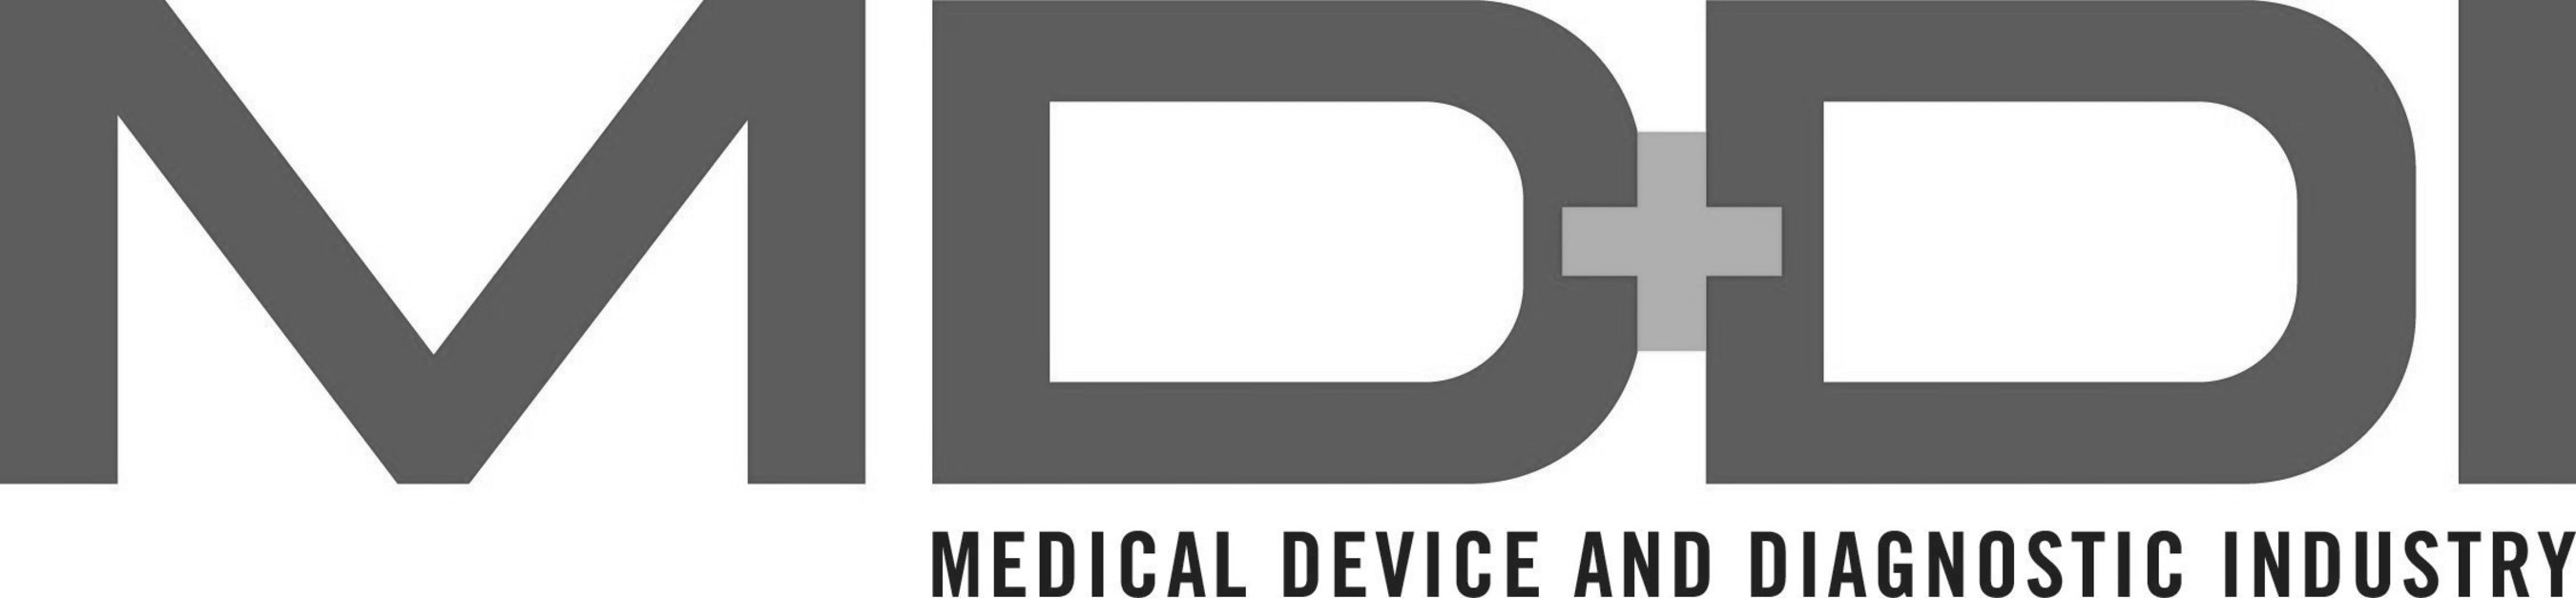 medical device and diagnostic industry logo